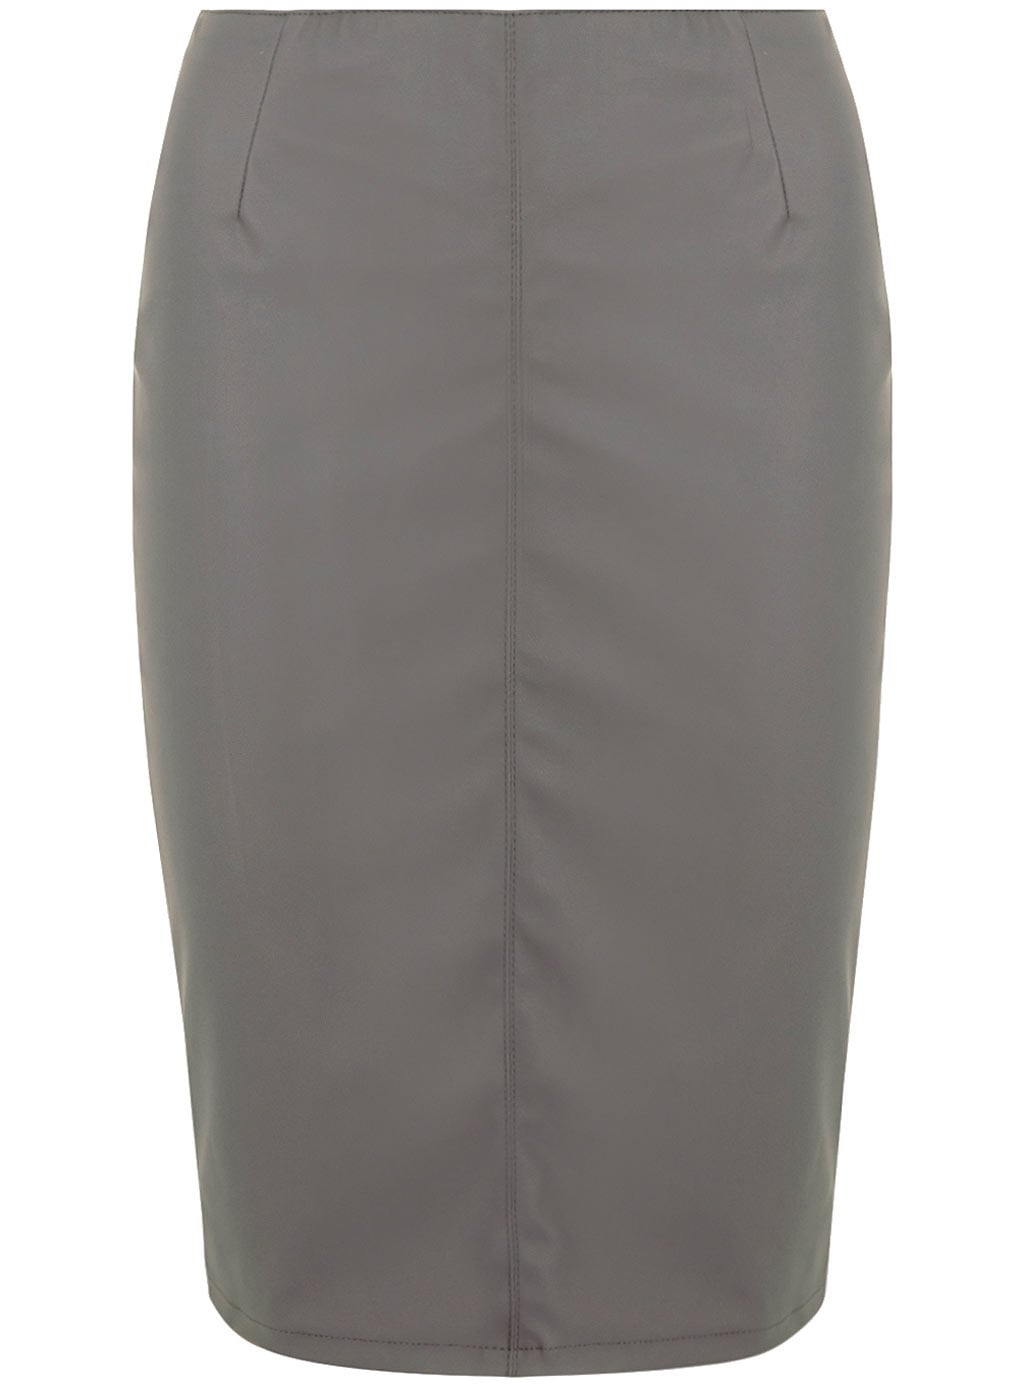 If your closet already includes more than enough pencil skirts in black and navy, mix things up with this Dorothy Perkins gray number ($45).